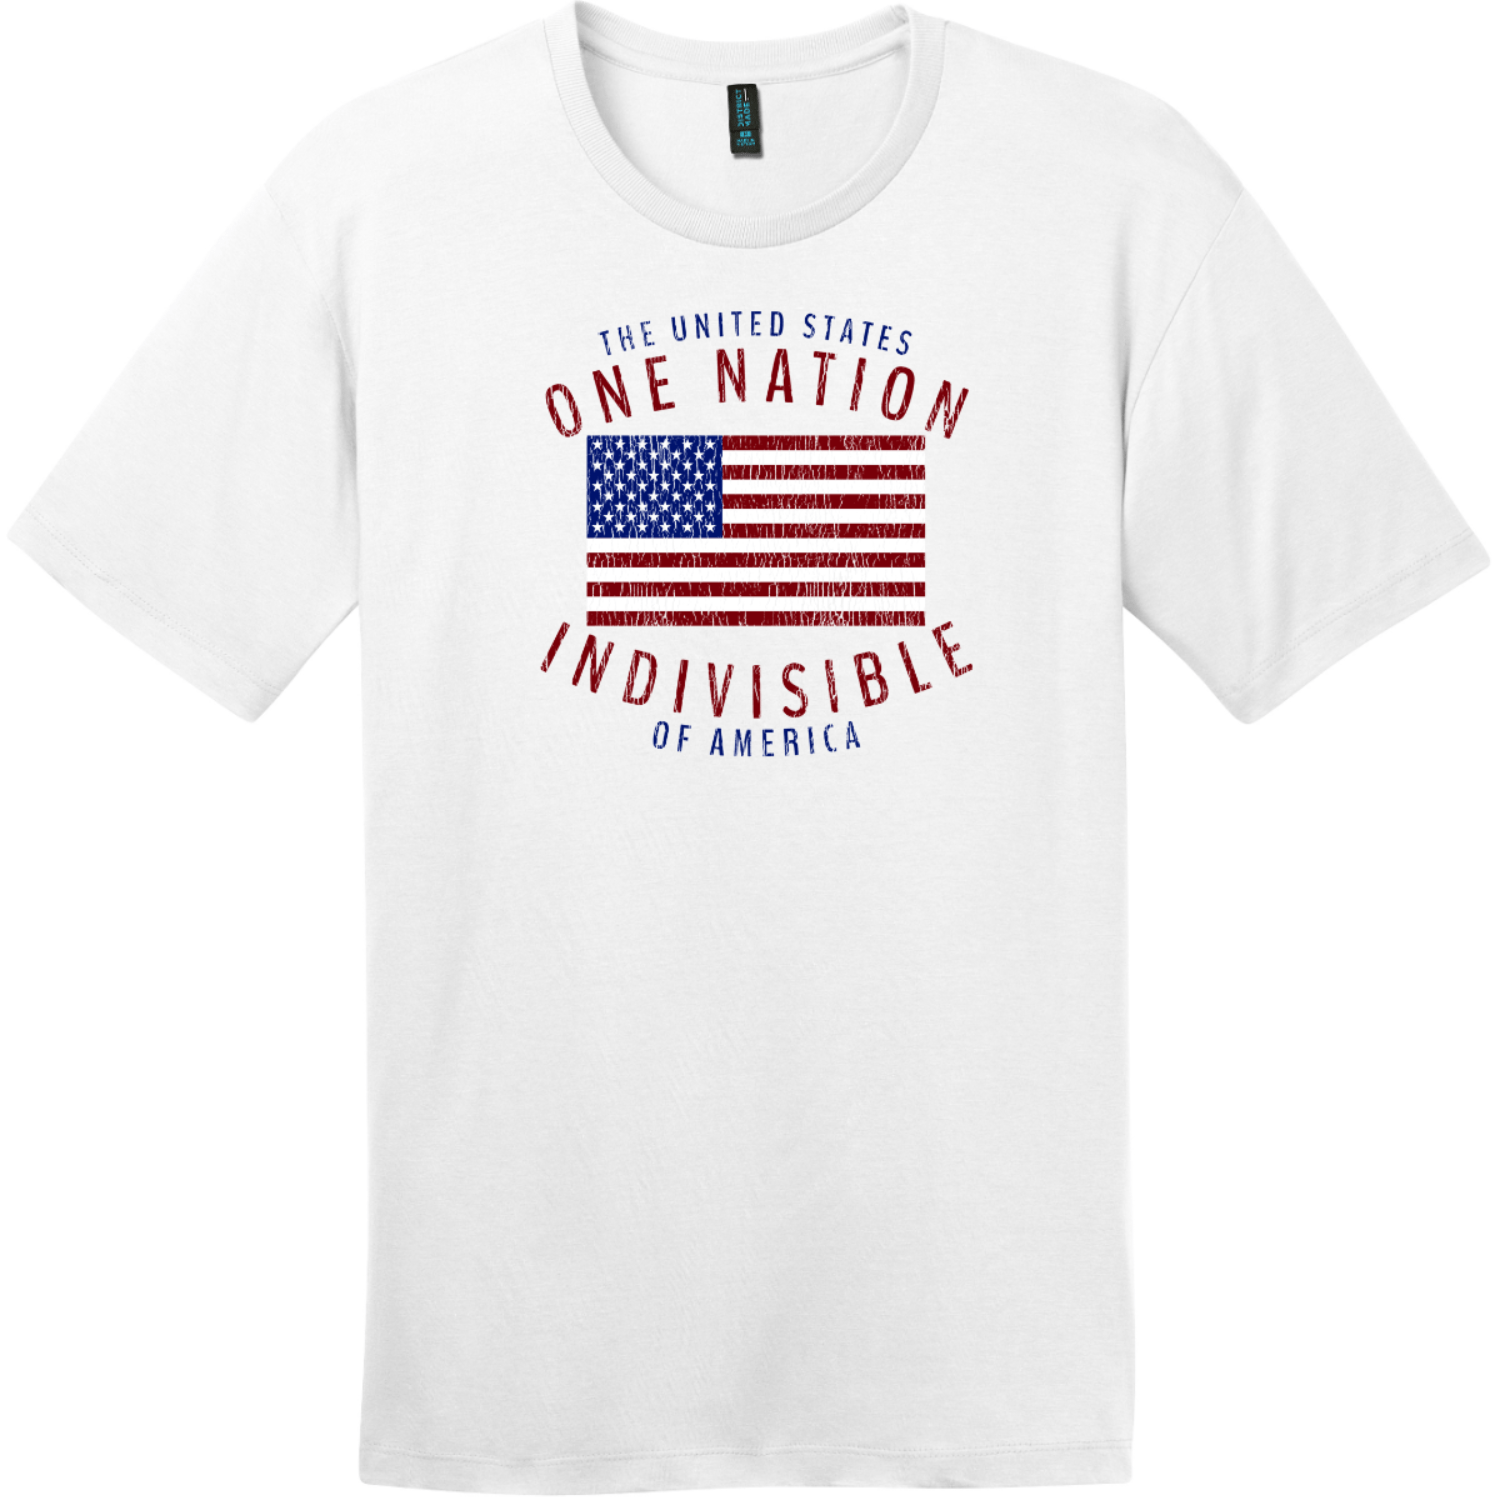 One Nation Indivisible American Flag T-Shirt Bright White District Perfect Weight Tee DT104